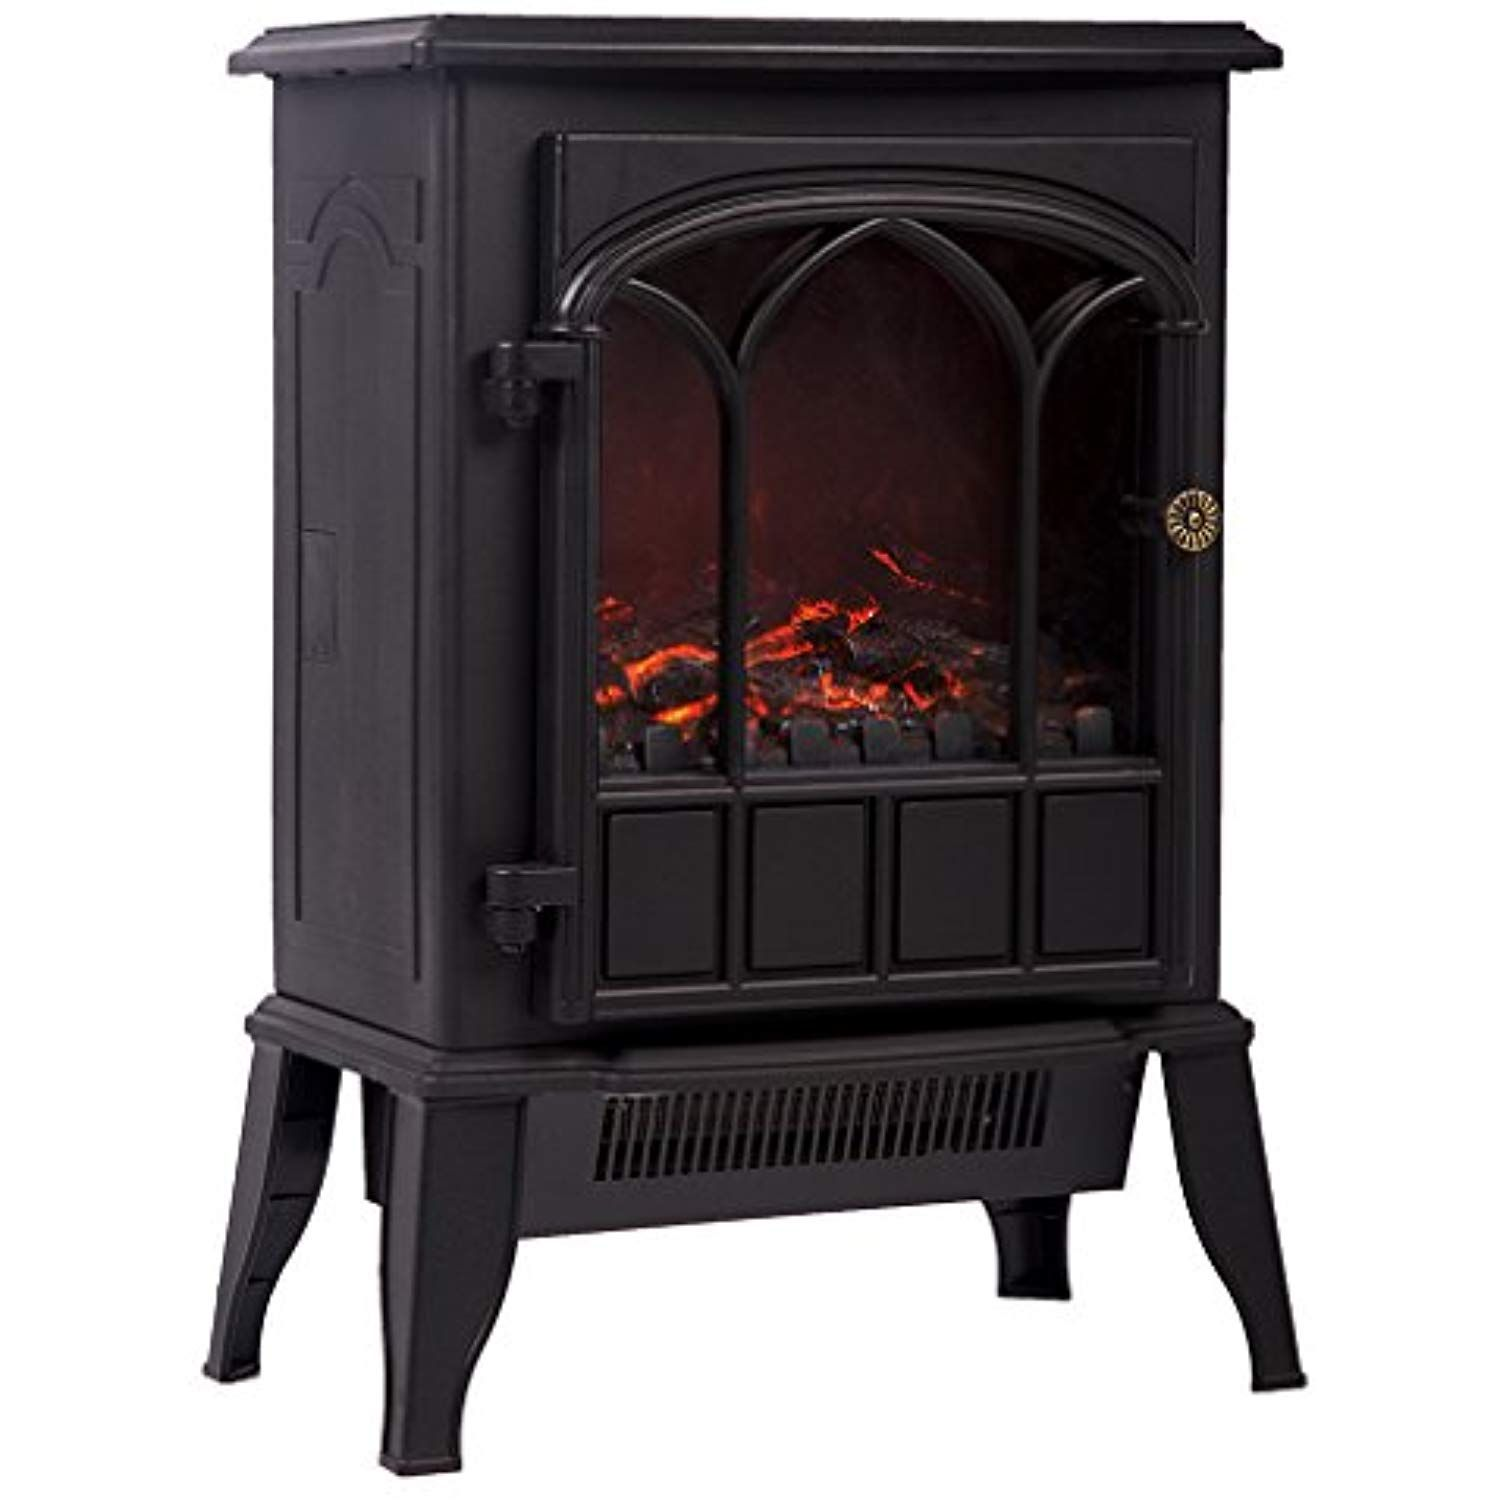 Bestmassage electric fireplace heater ww free standing